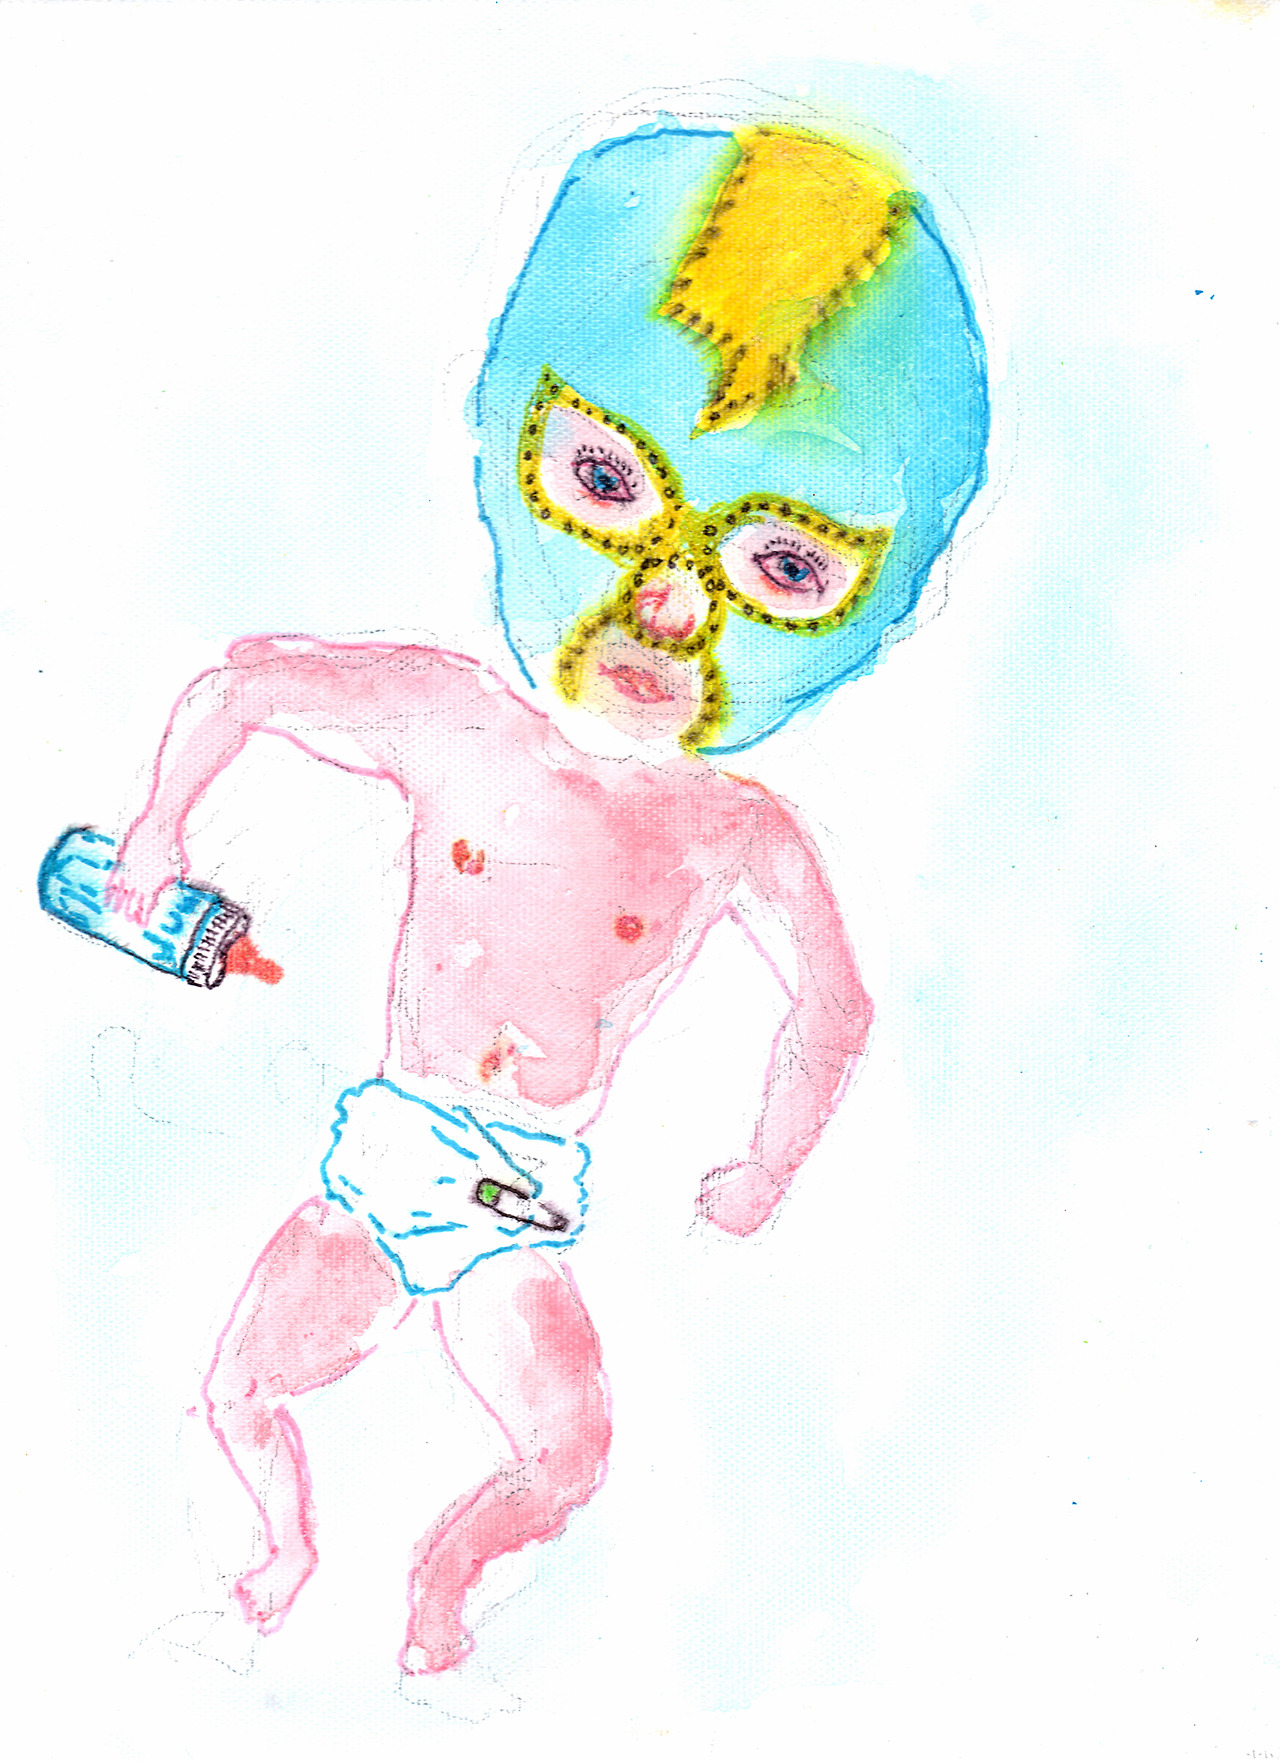 9/6/13 -  Luchadorito .   This might be the most disturbing thing I have ever made. Also, I don't speak any Spanish (obviously).   Buy it here -  http://taylorwinder.bigcartel.com    Prints here -  http://society6.com/taylorwinder